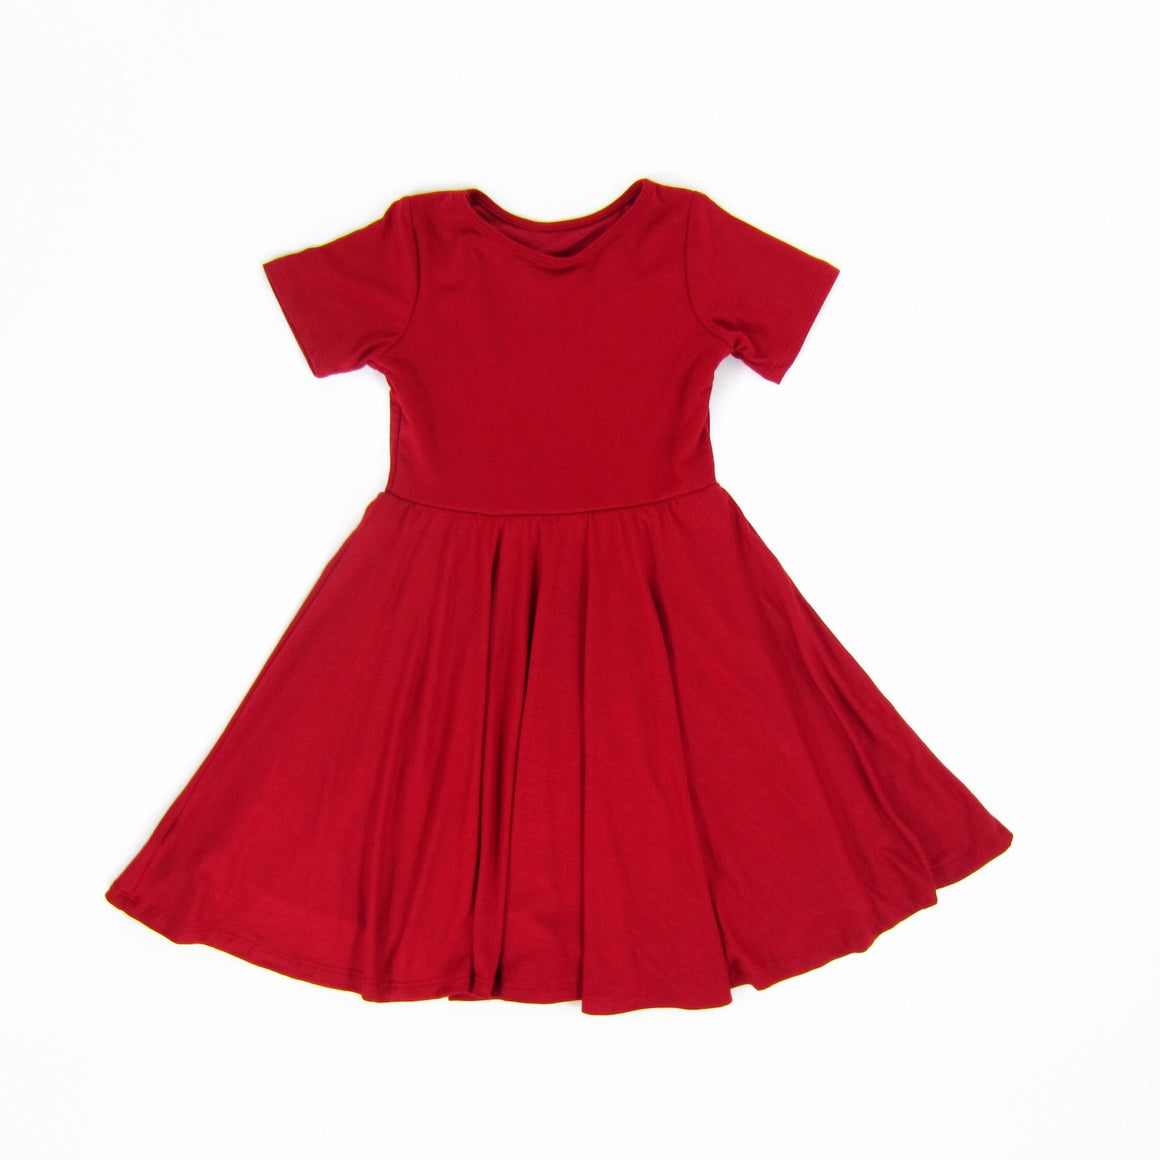 Girls Red Twirl Dress - Liberty Lark